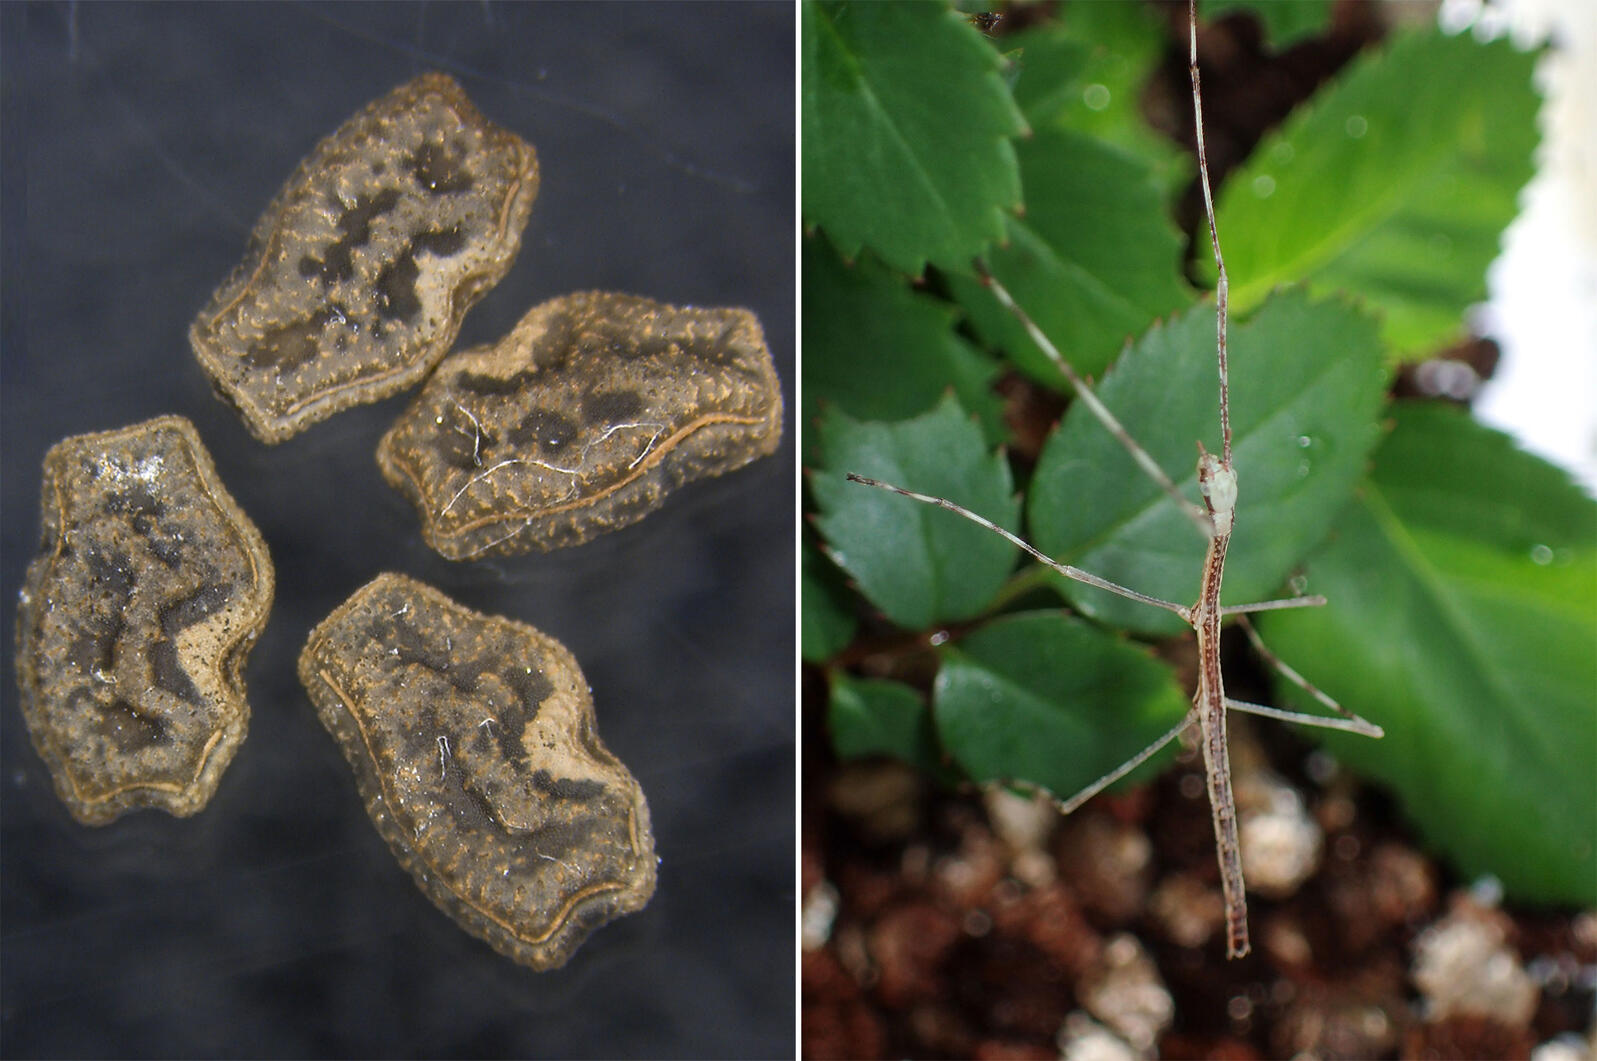 From left: Stick insect eggs collected from the excrement of Brown-eared Bulbul; a stick insect that hatched from an ingested egg. Photos: Kenji Suetsugu